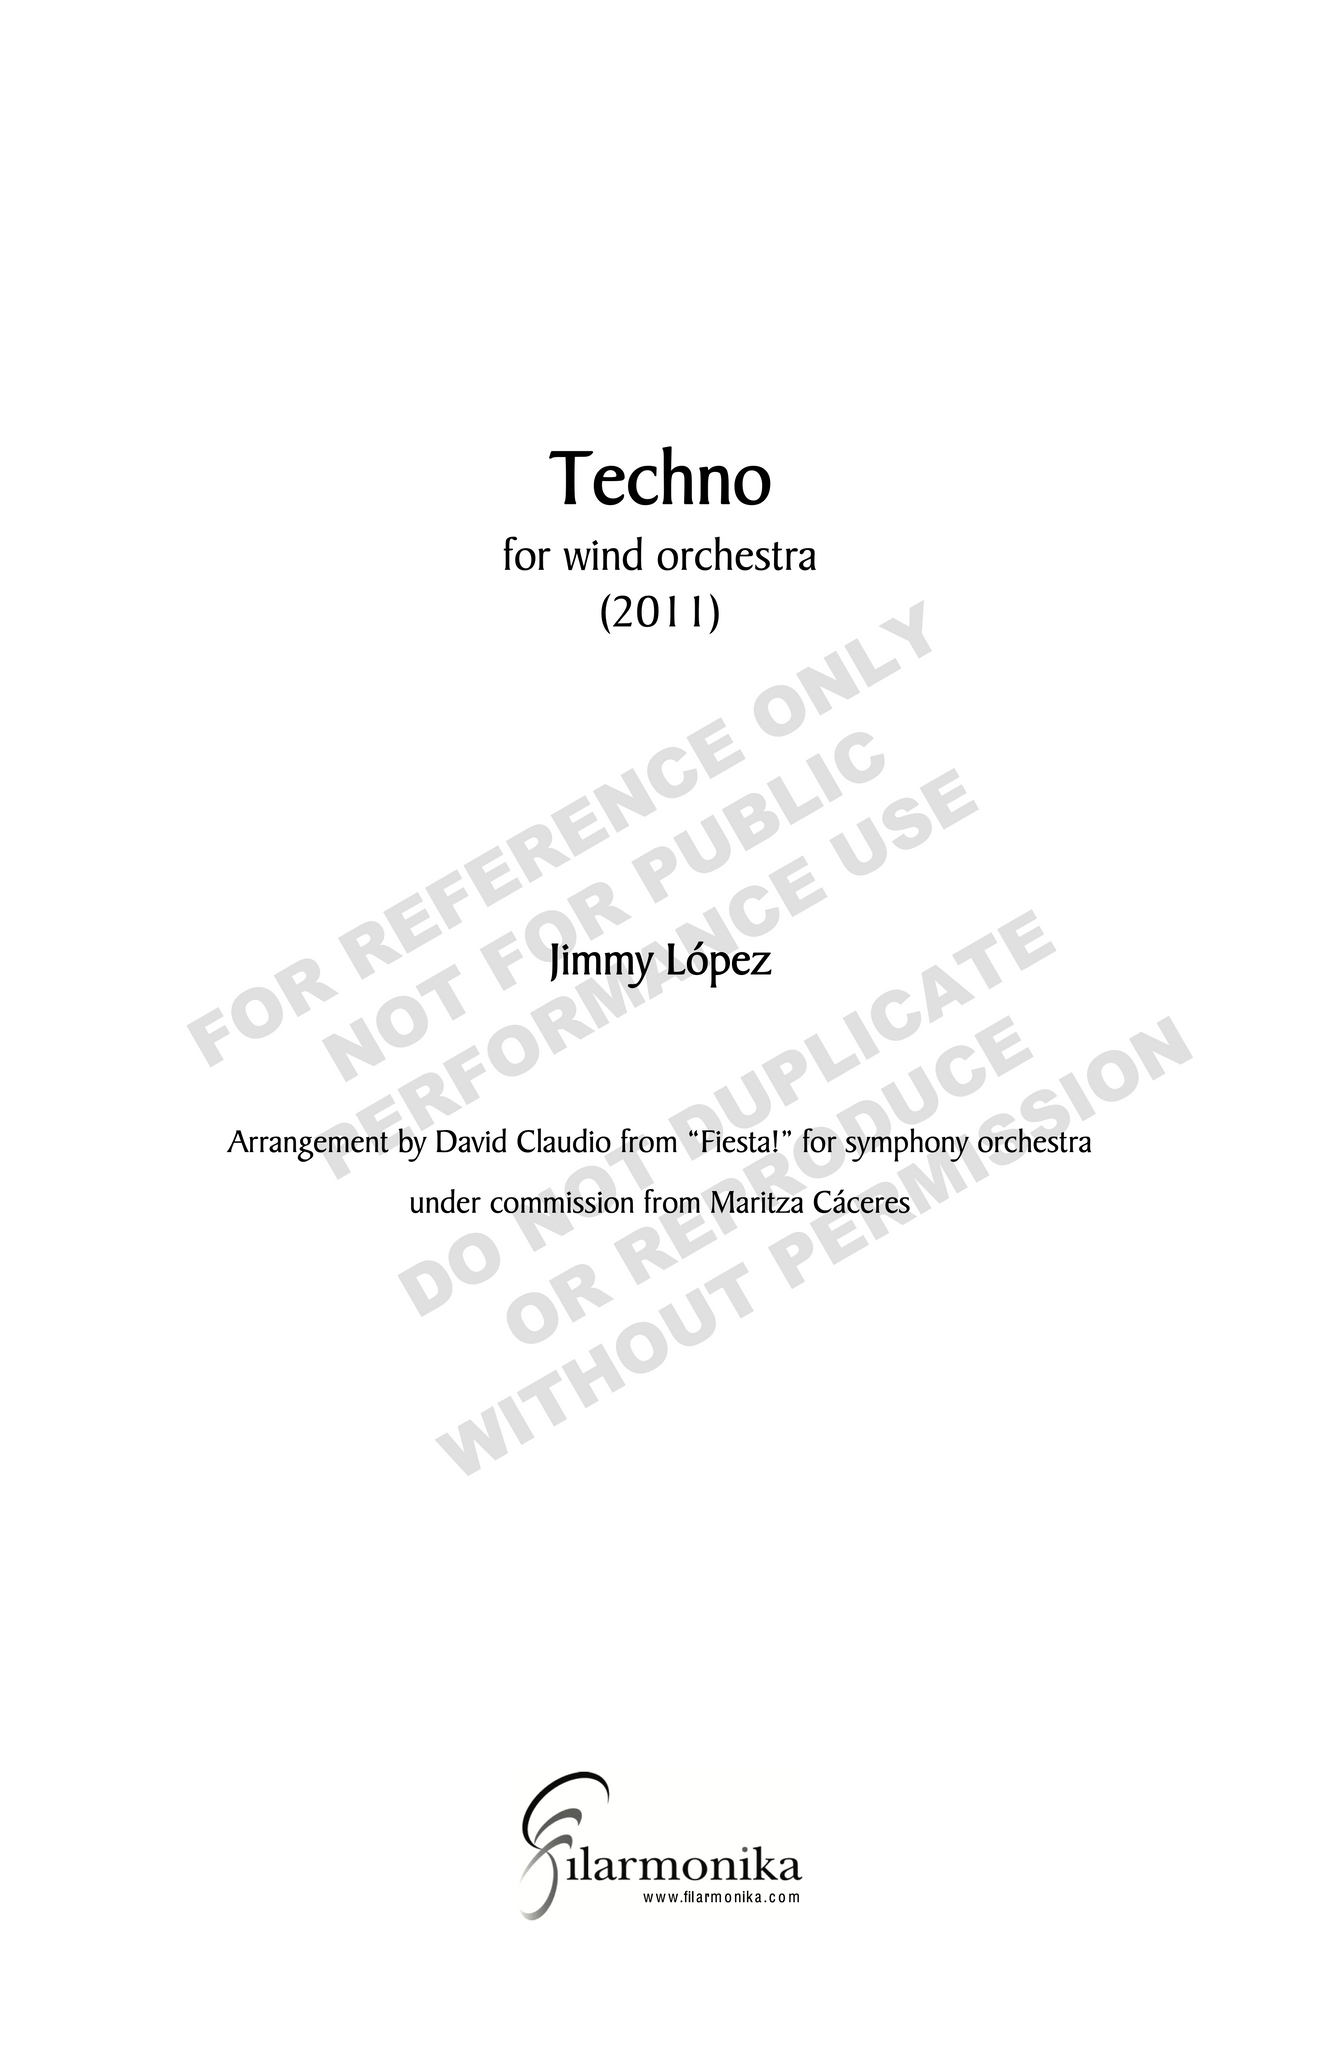 Techno, for Fiesta!, for wind orchestra (arr.Claudio)